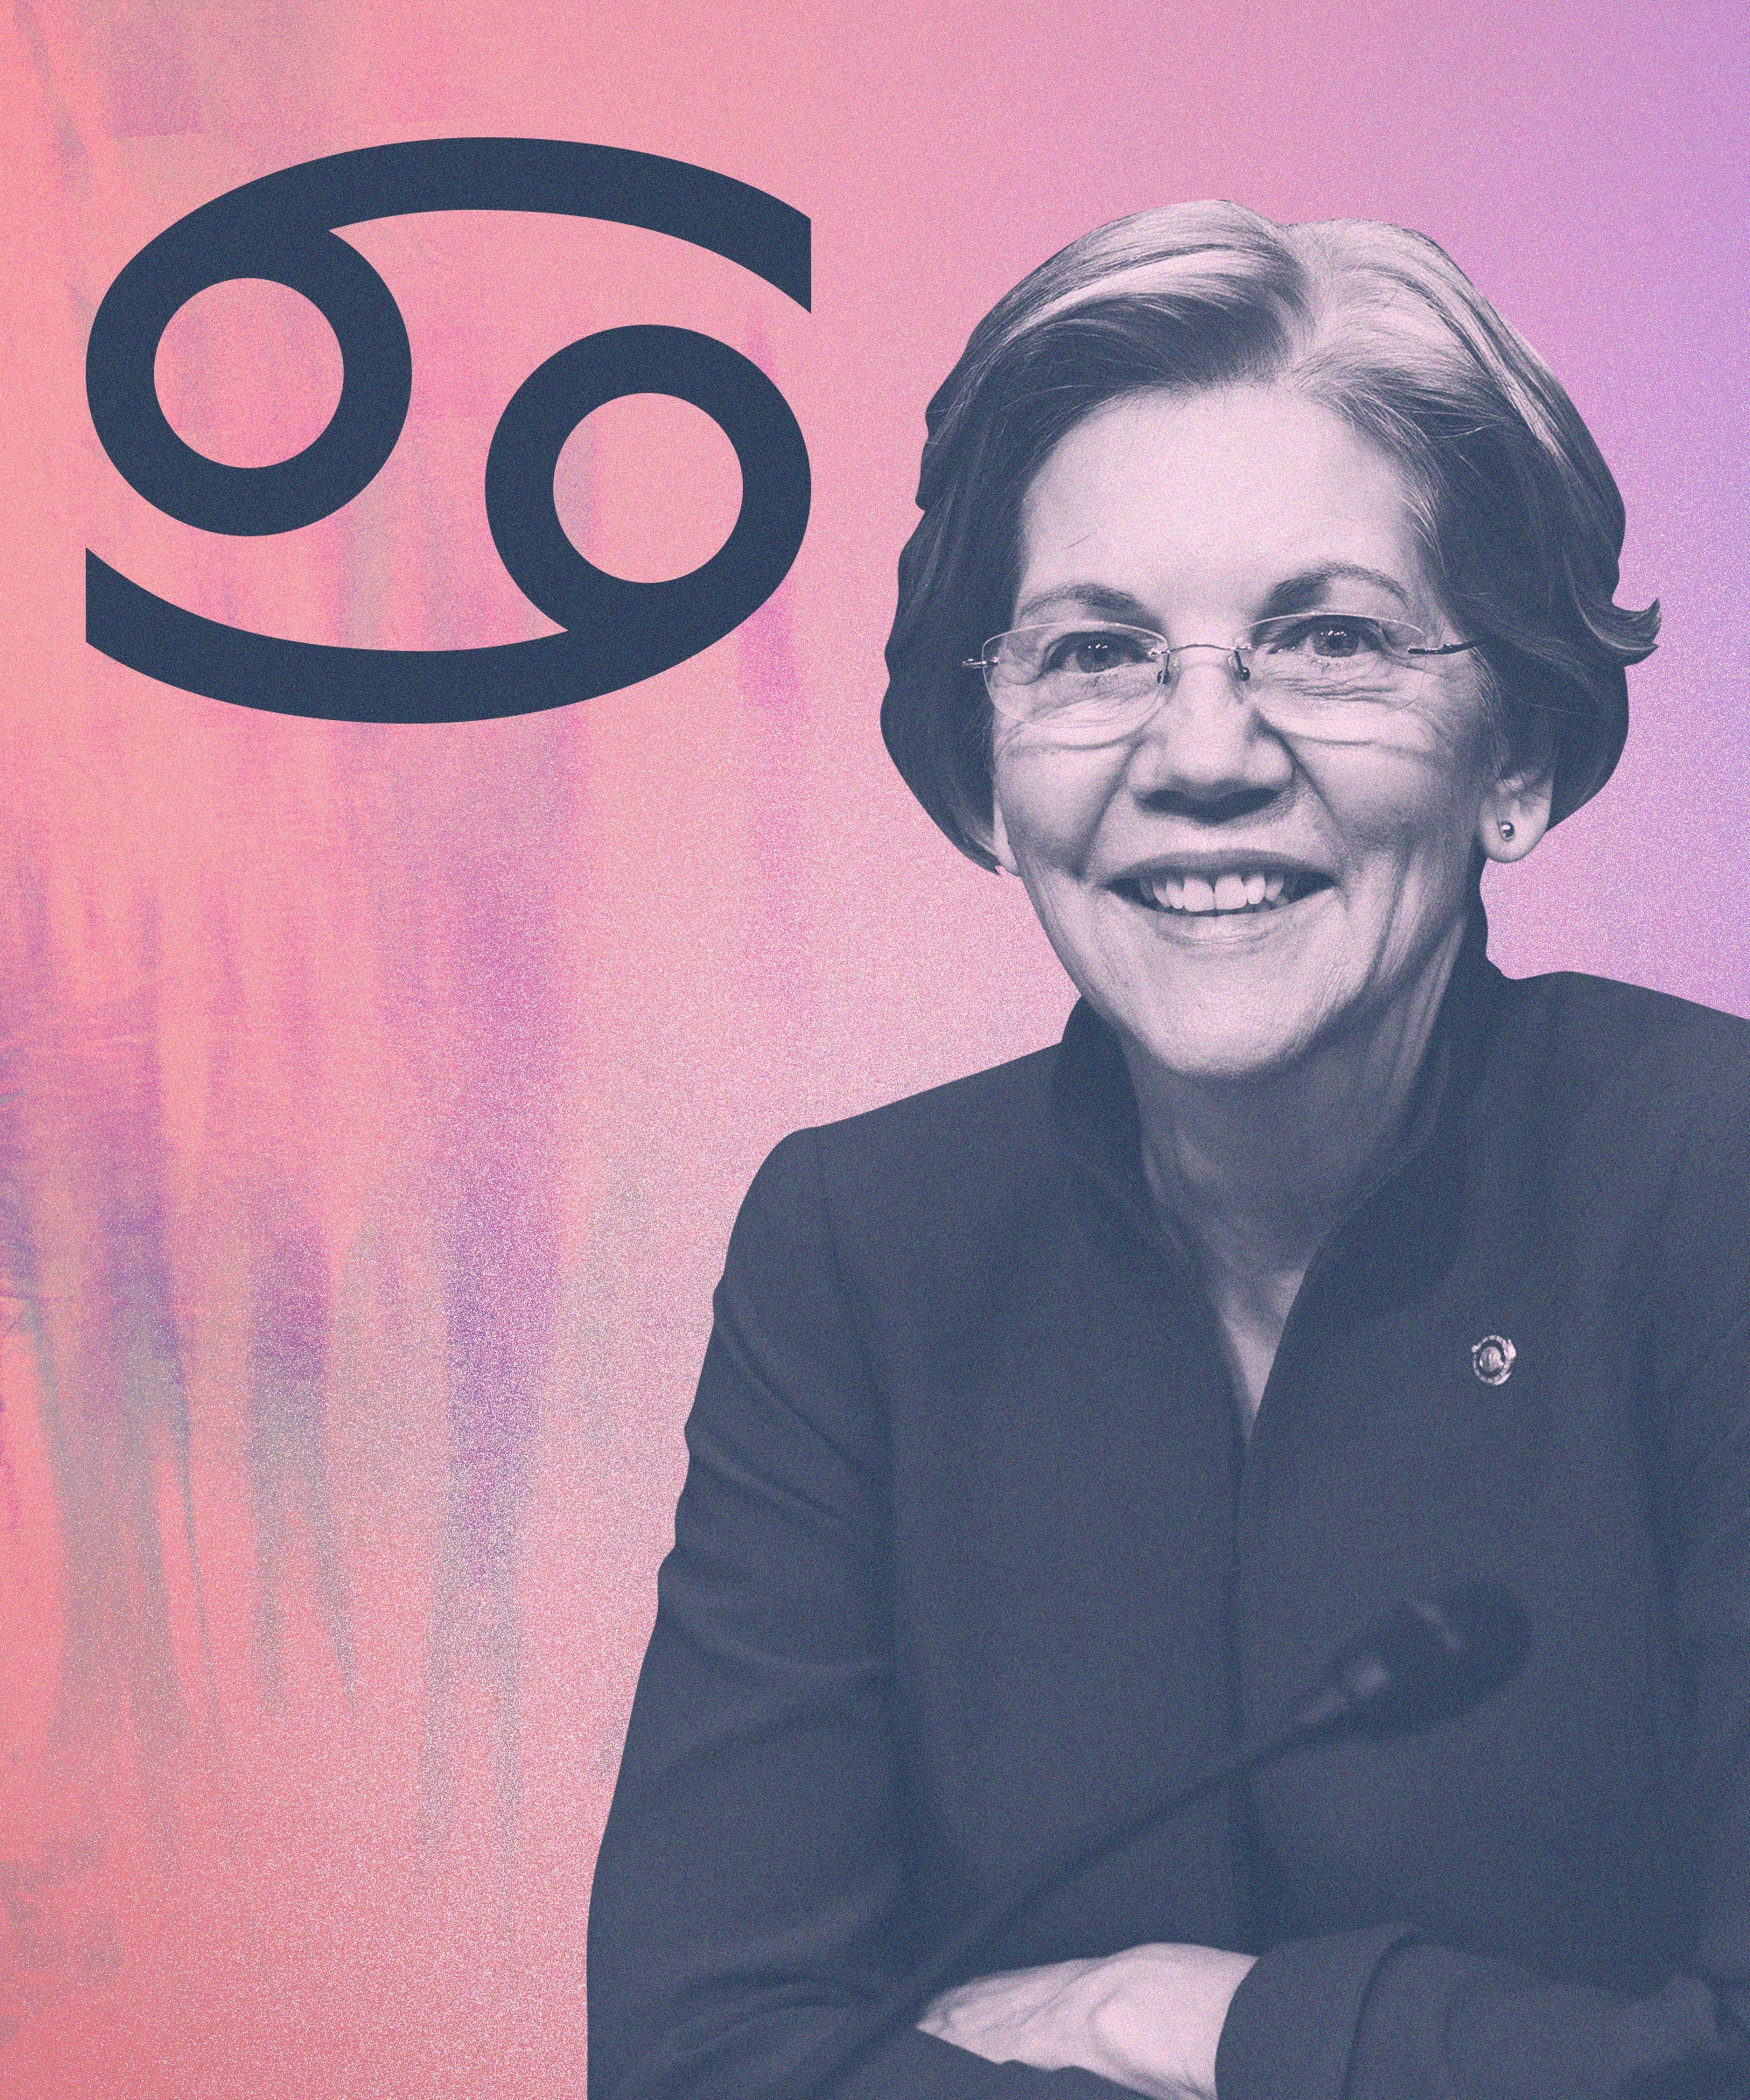 What 2020 Presidential Candidates Zodiac Signs Reveal